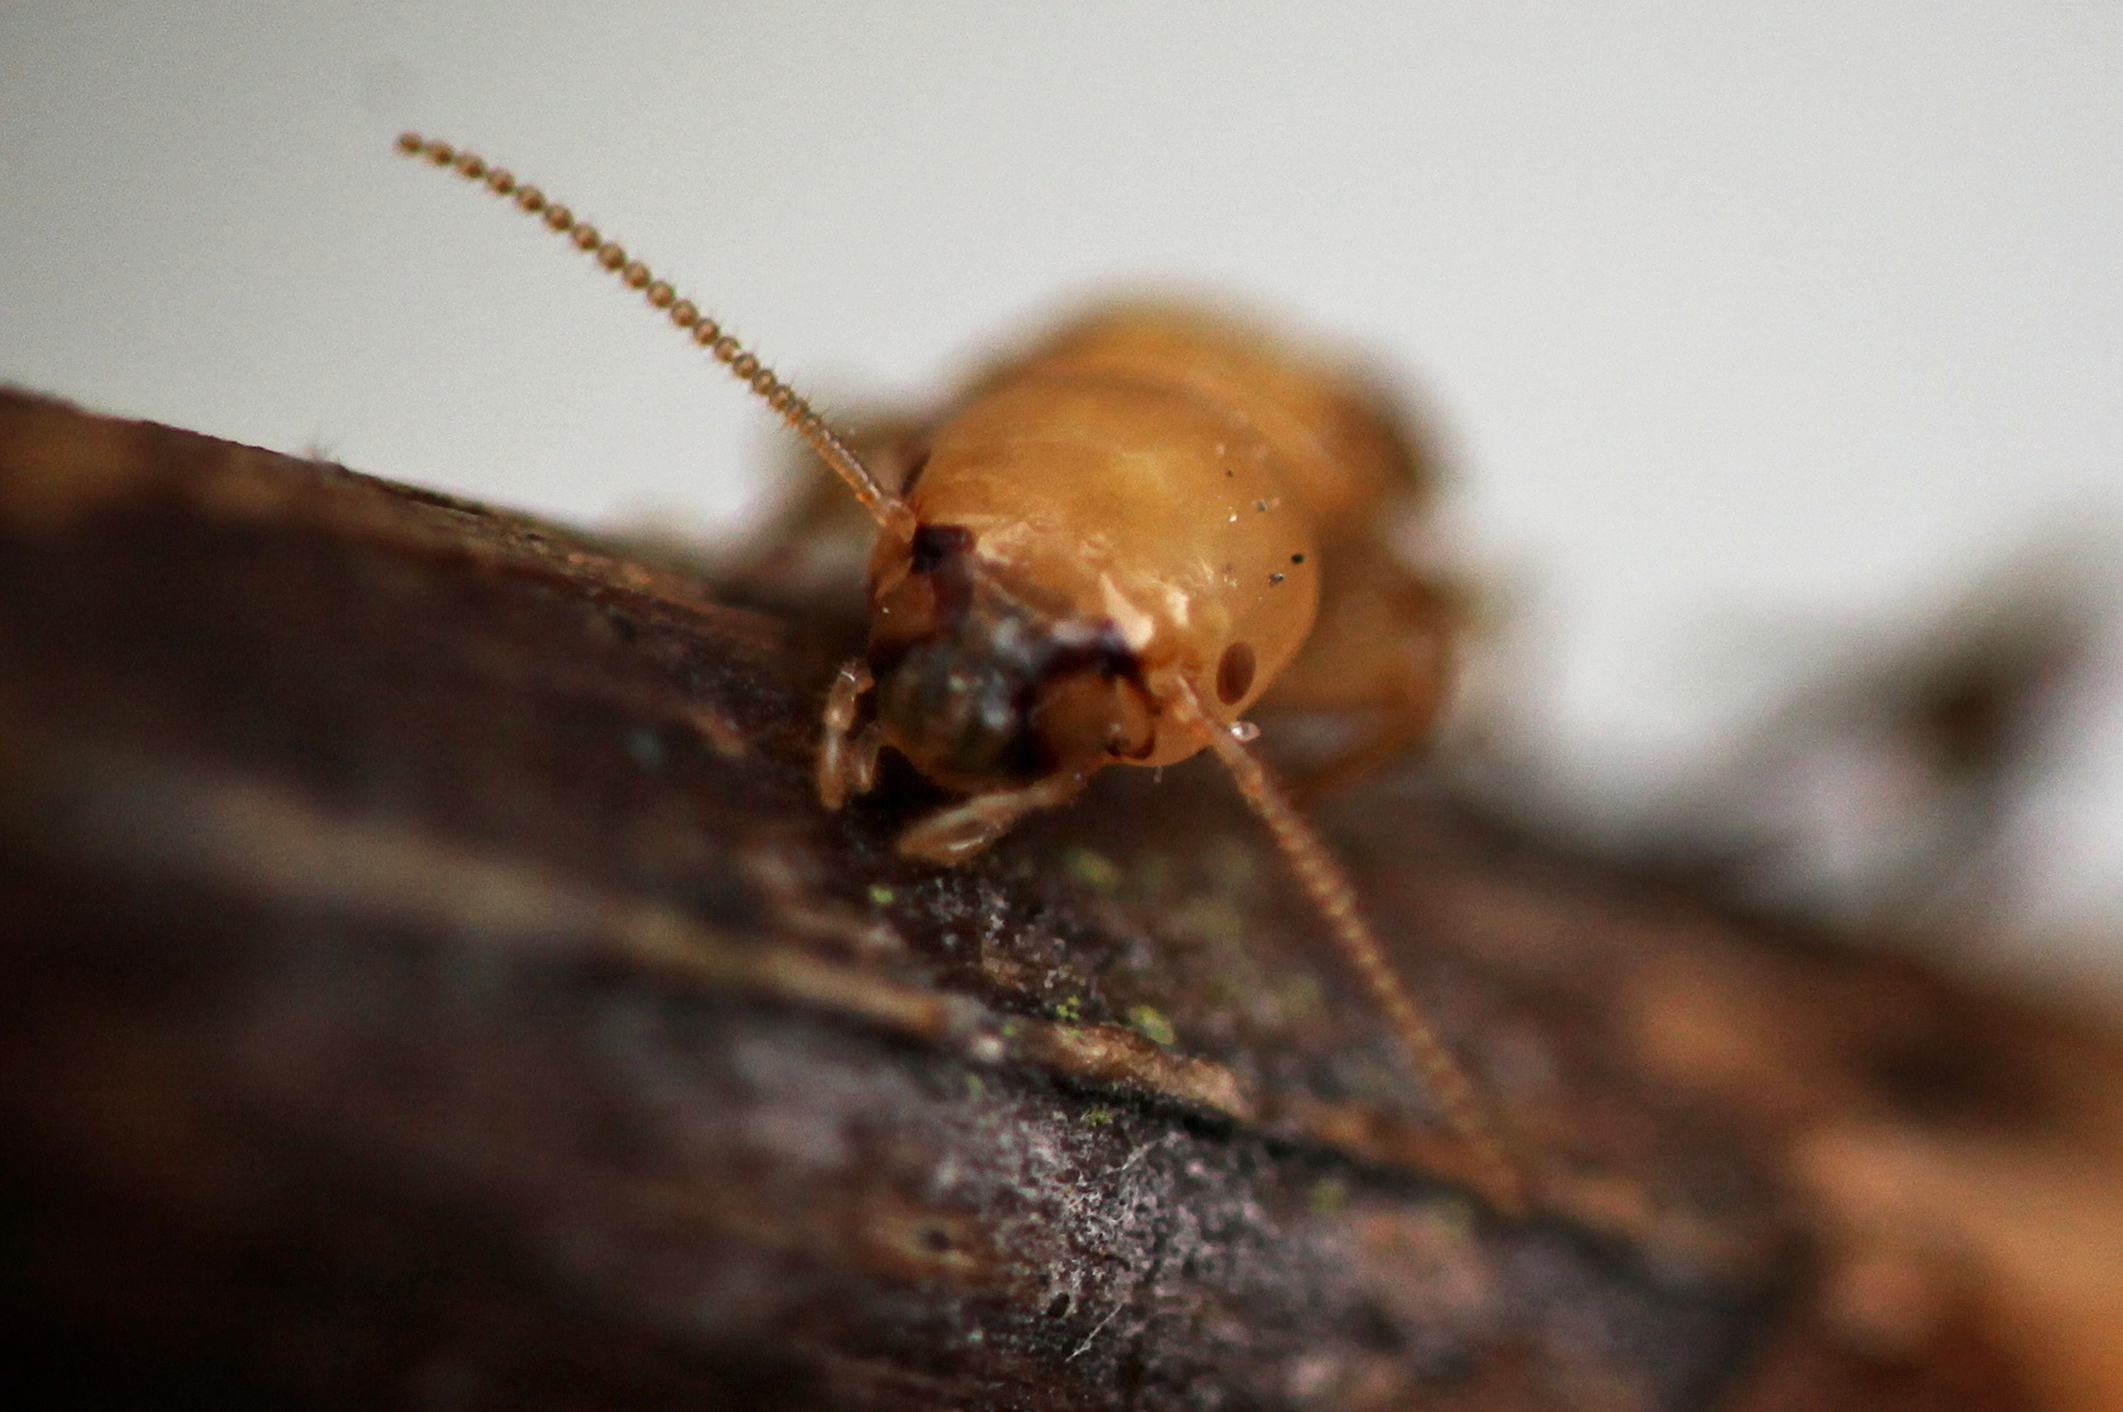 Watch And Learn How Termites Turn Your House Into A Poop Palace Pbs Newshour